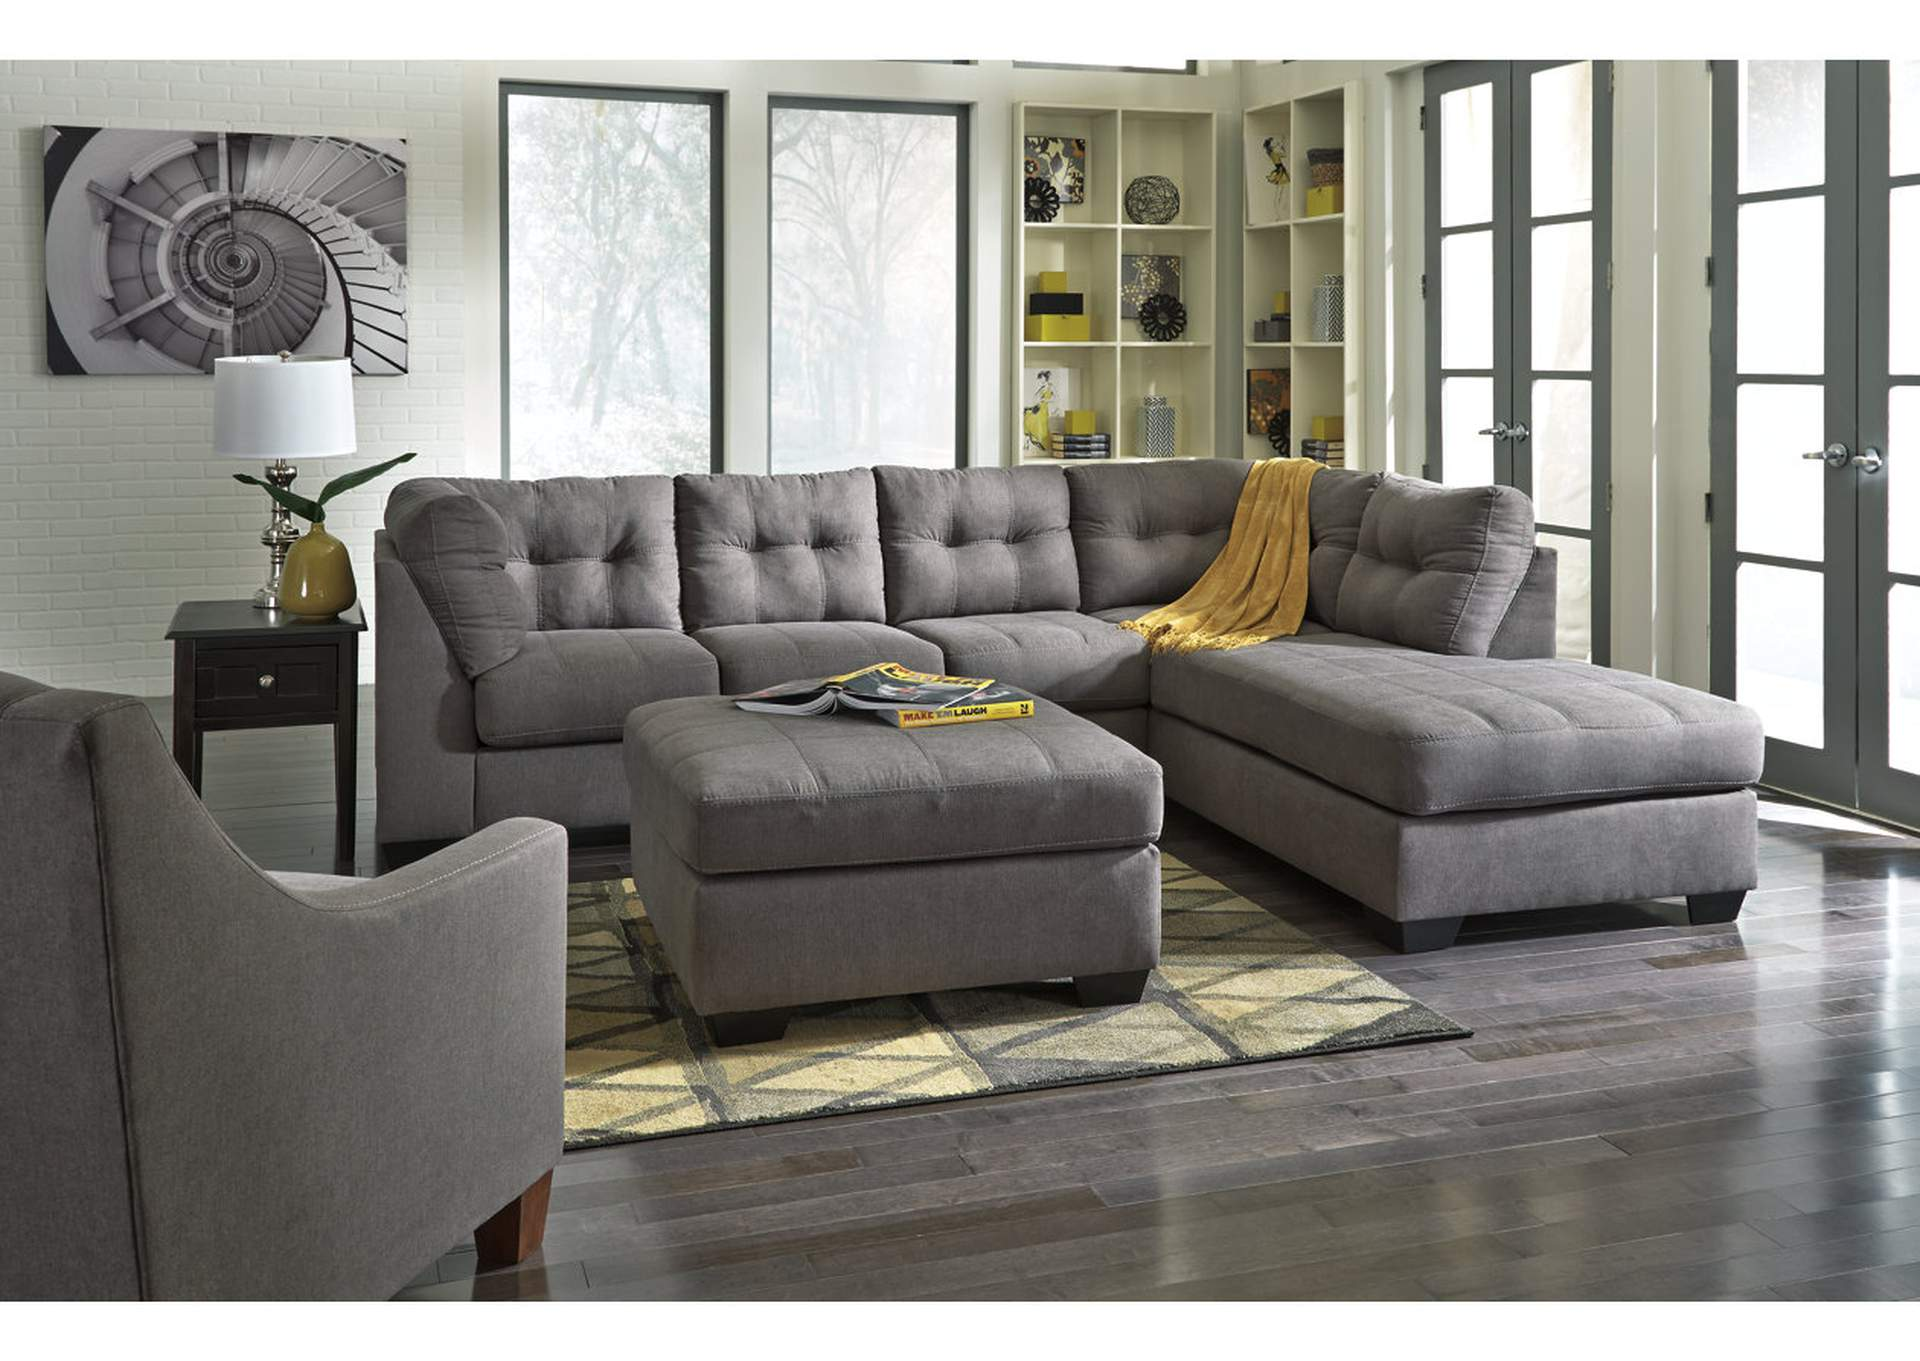 Maier 2-Piece Sectional with Chaise,Benchcraft